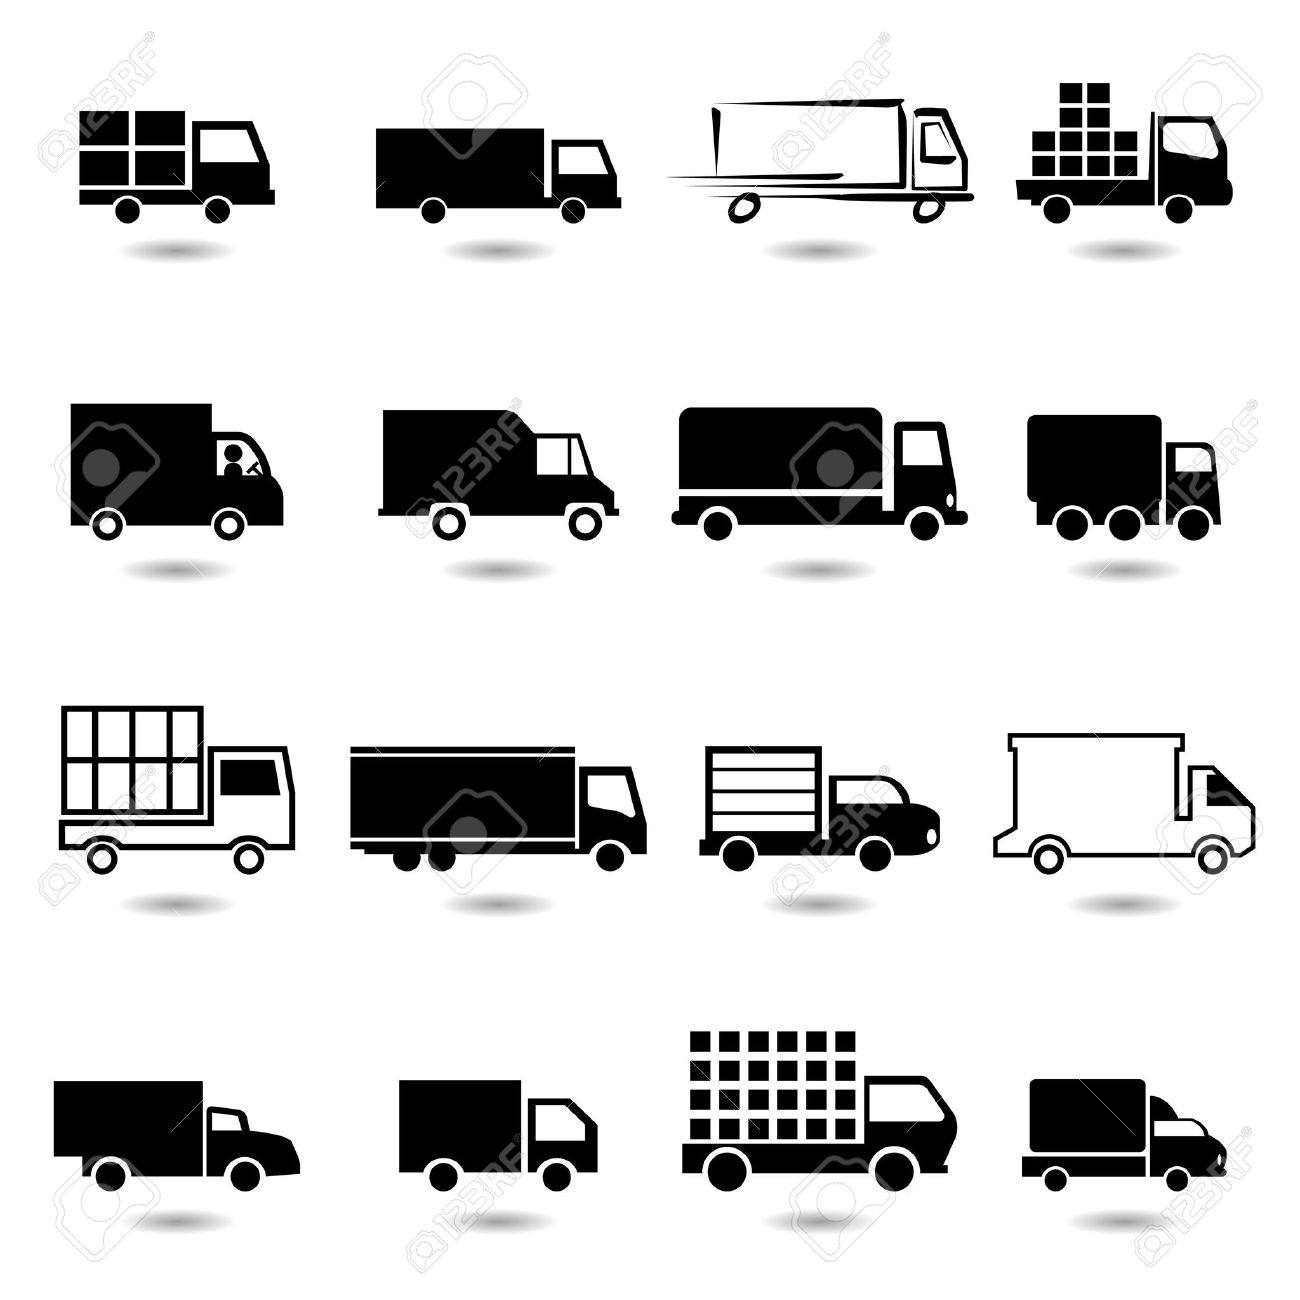 Vector Set Of Different Truck Symbols All Vector Objects Are ...